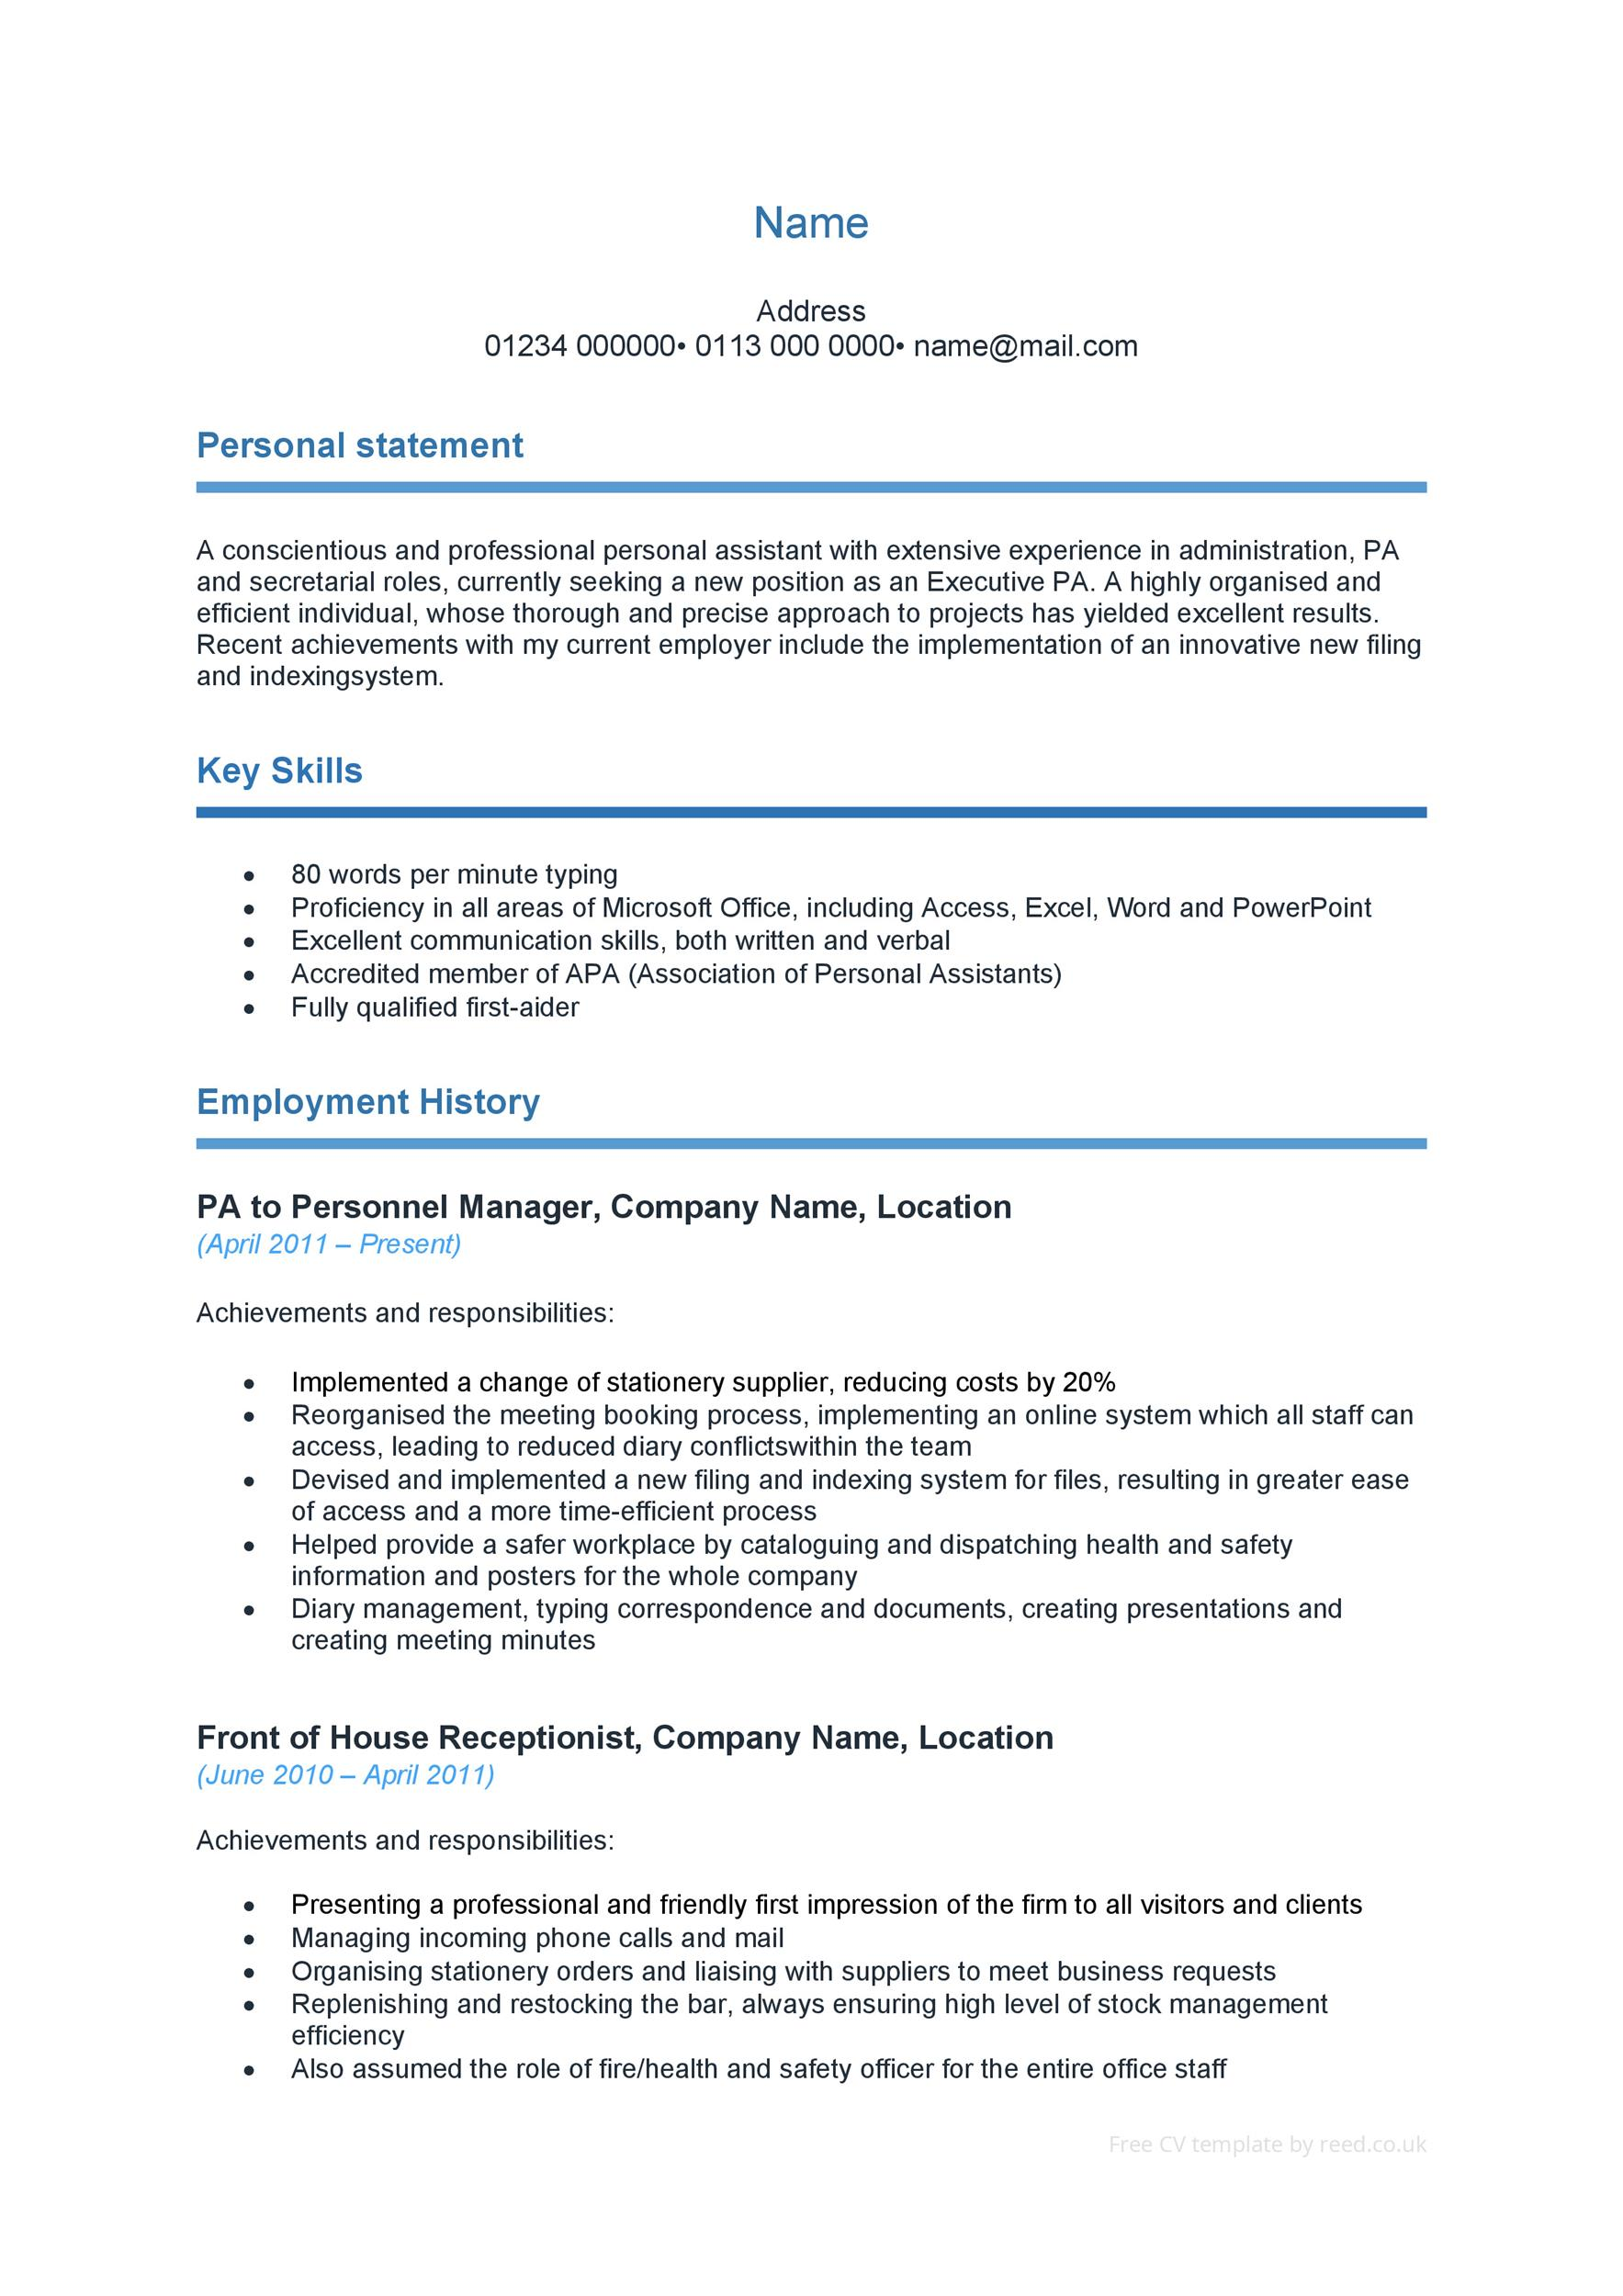 Careerperfectr Resume Writing Help Sample Resumes 48 Great Curriculum Vitae Templates And Examples Template Lab